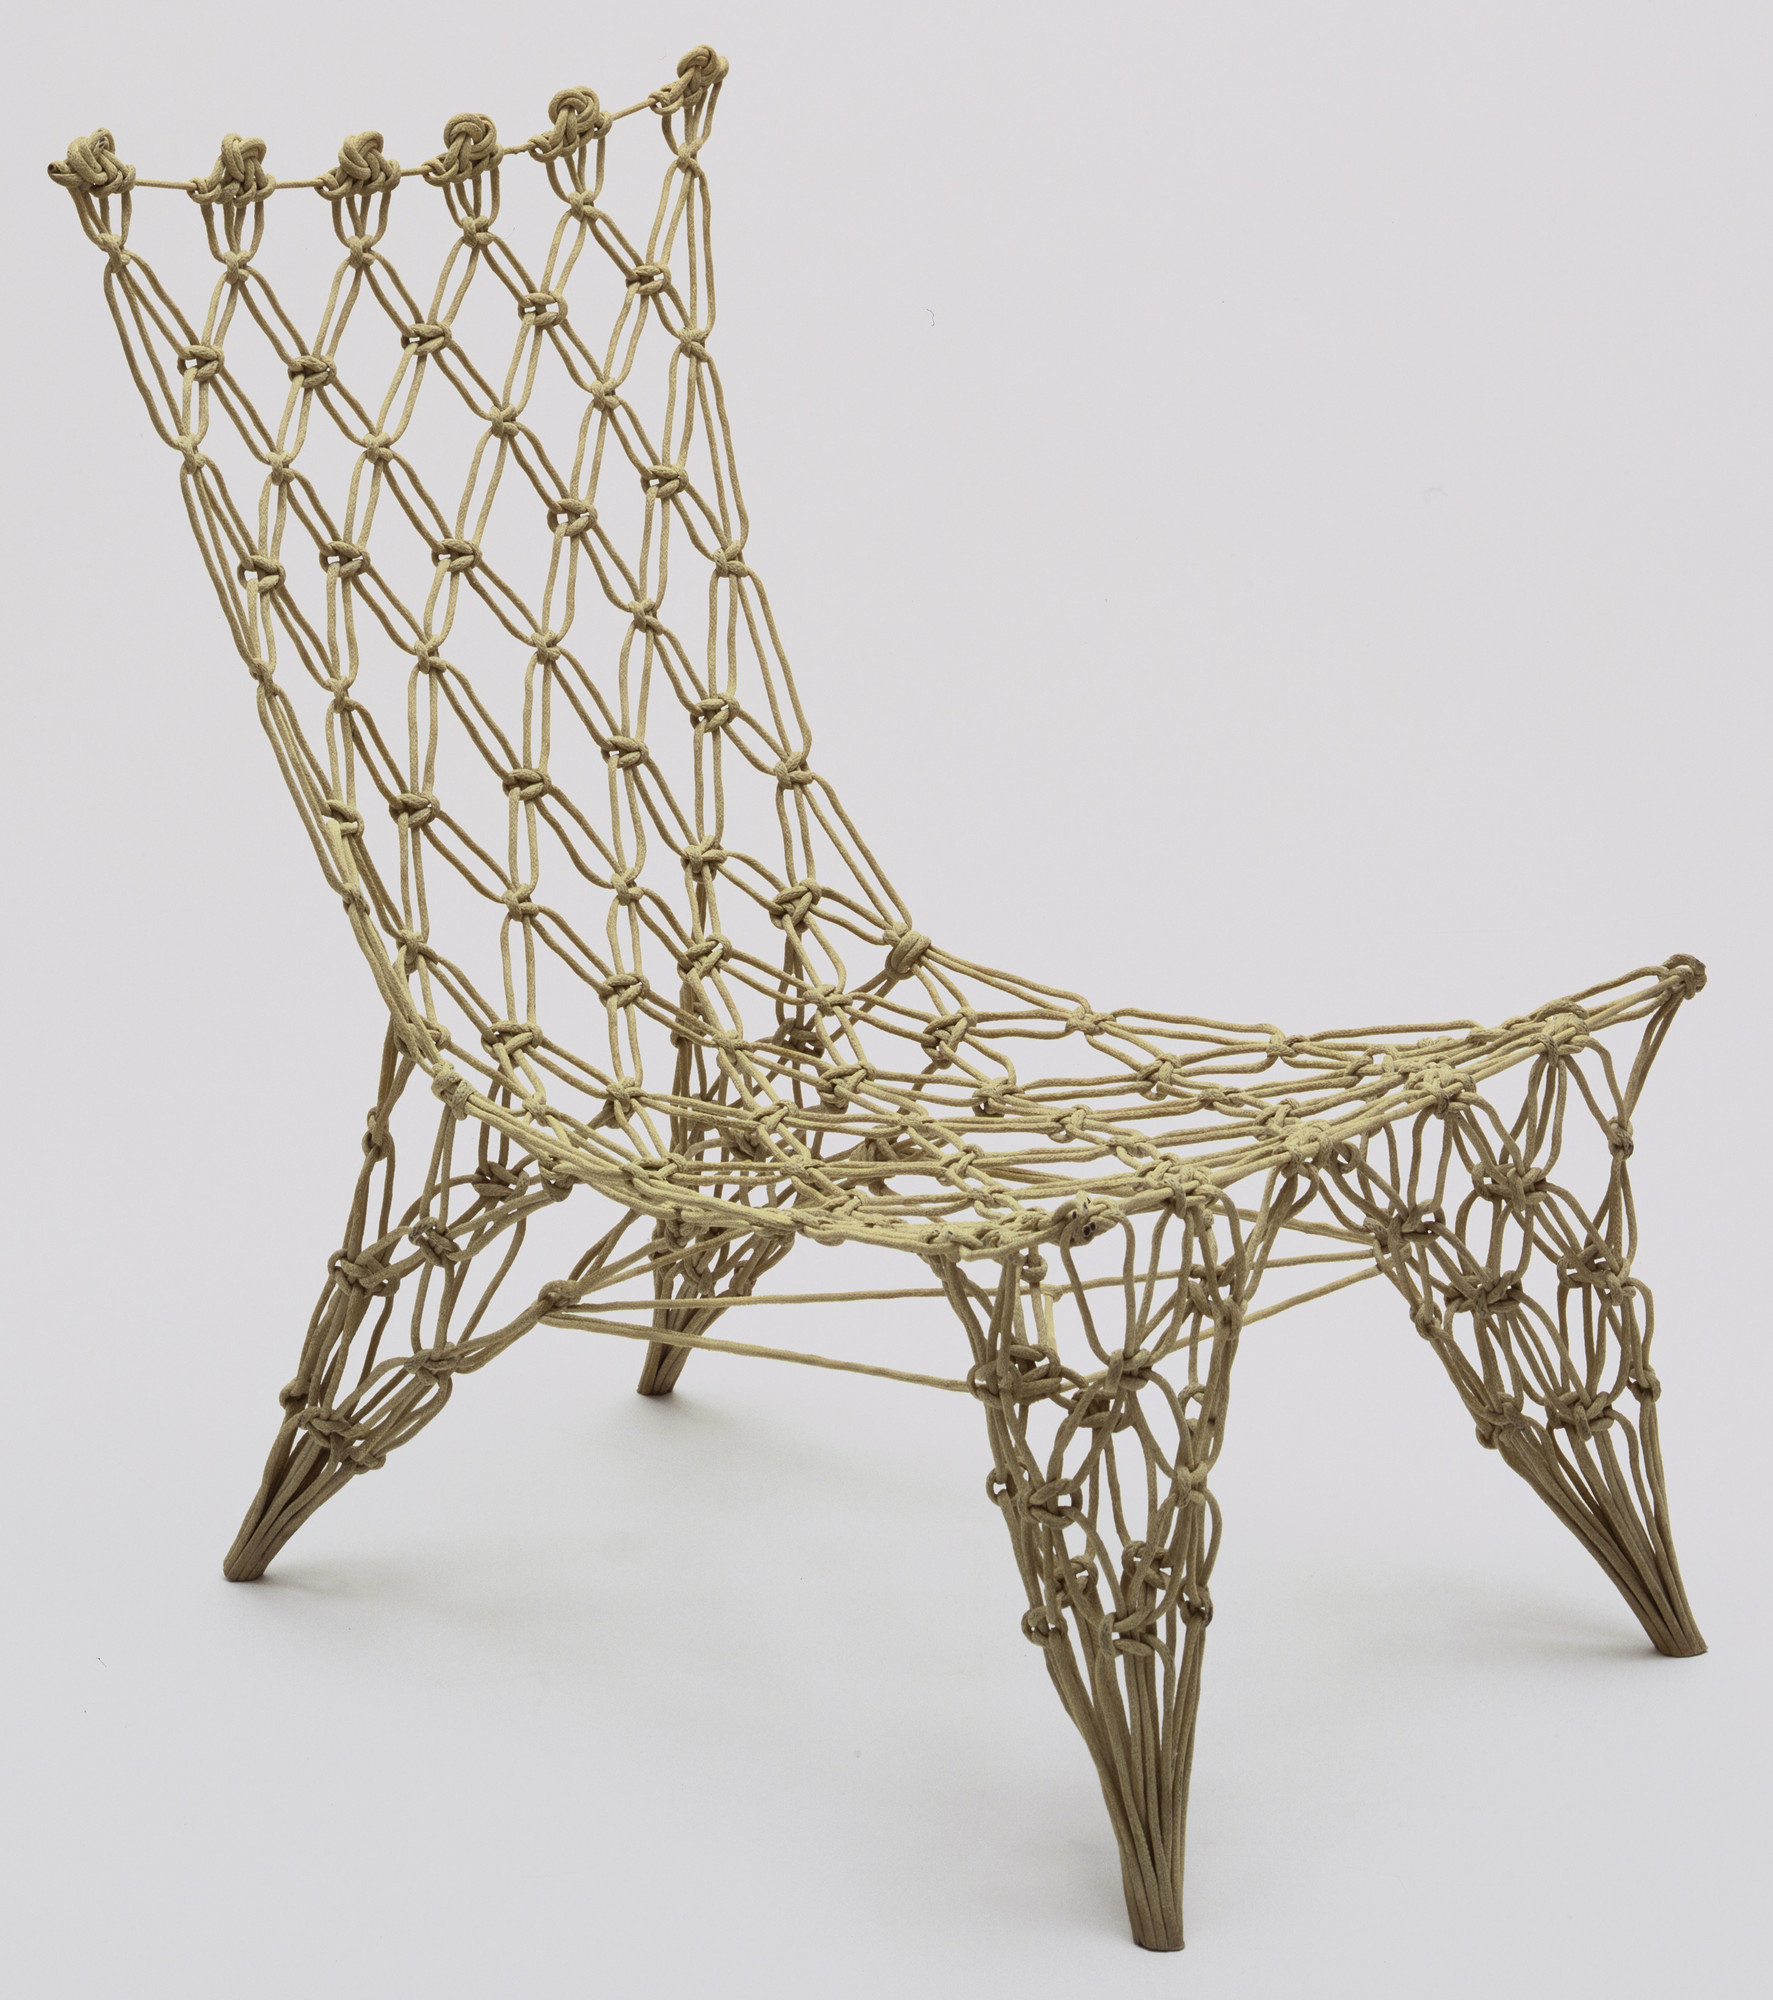 Marcel Wanders. Knotted Chair. 1995